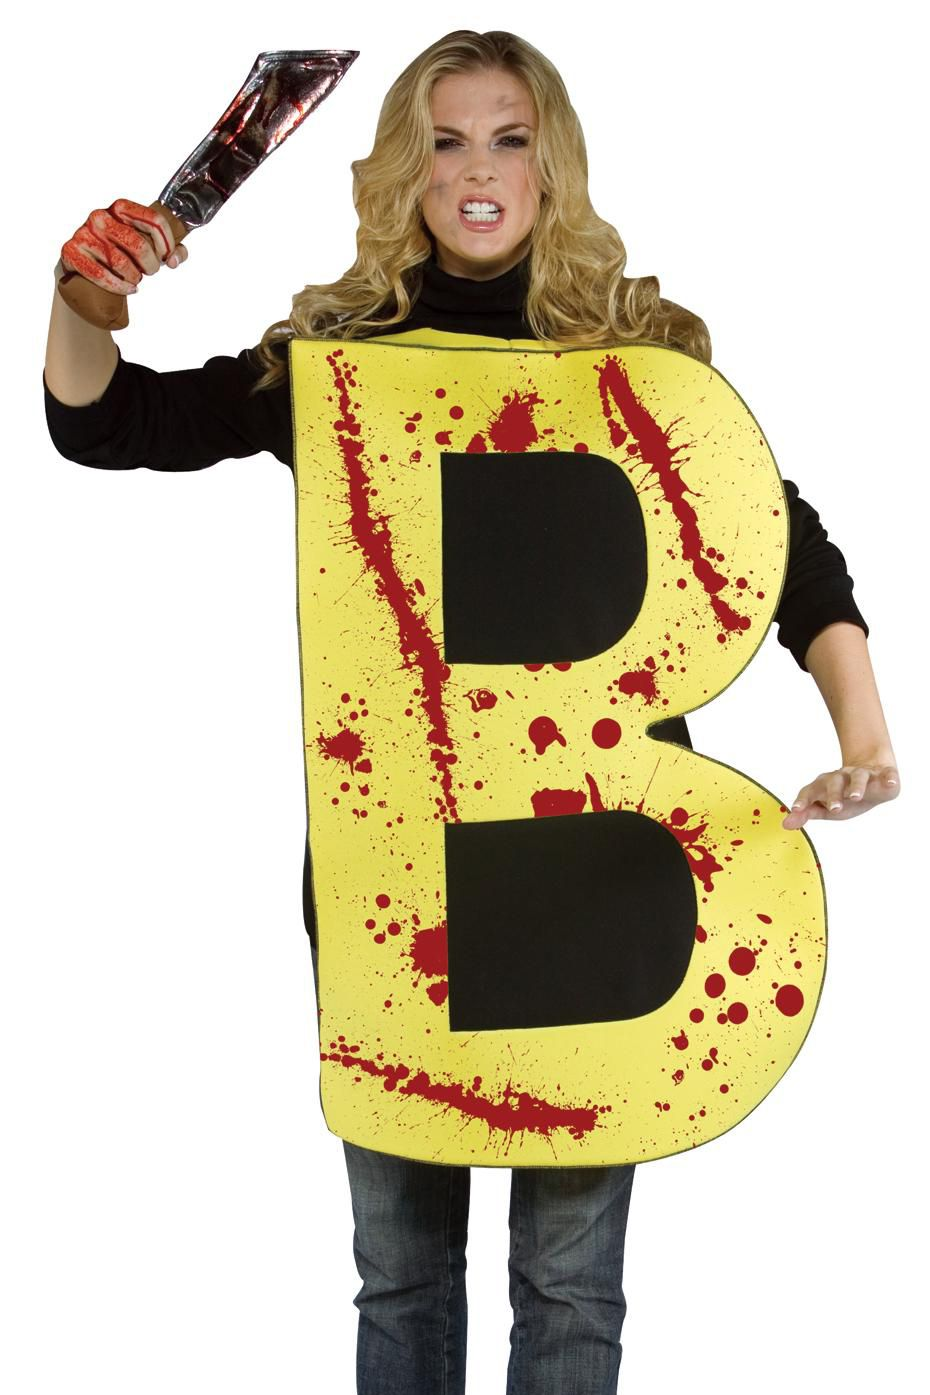 30 Funny Pun Halloween Costumes 2017 - Hilarious Ideas for Halloween Costumes  sc 1 st  Good Housekeeping & 30 Funny Pun Halloween Costumes 2017 - Hilarious Ideas for Halloween ...